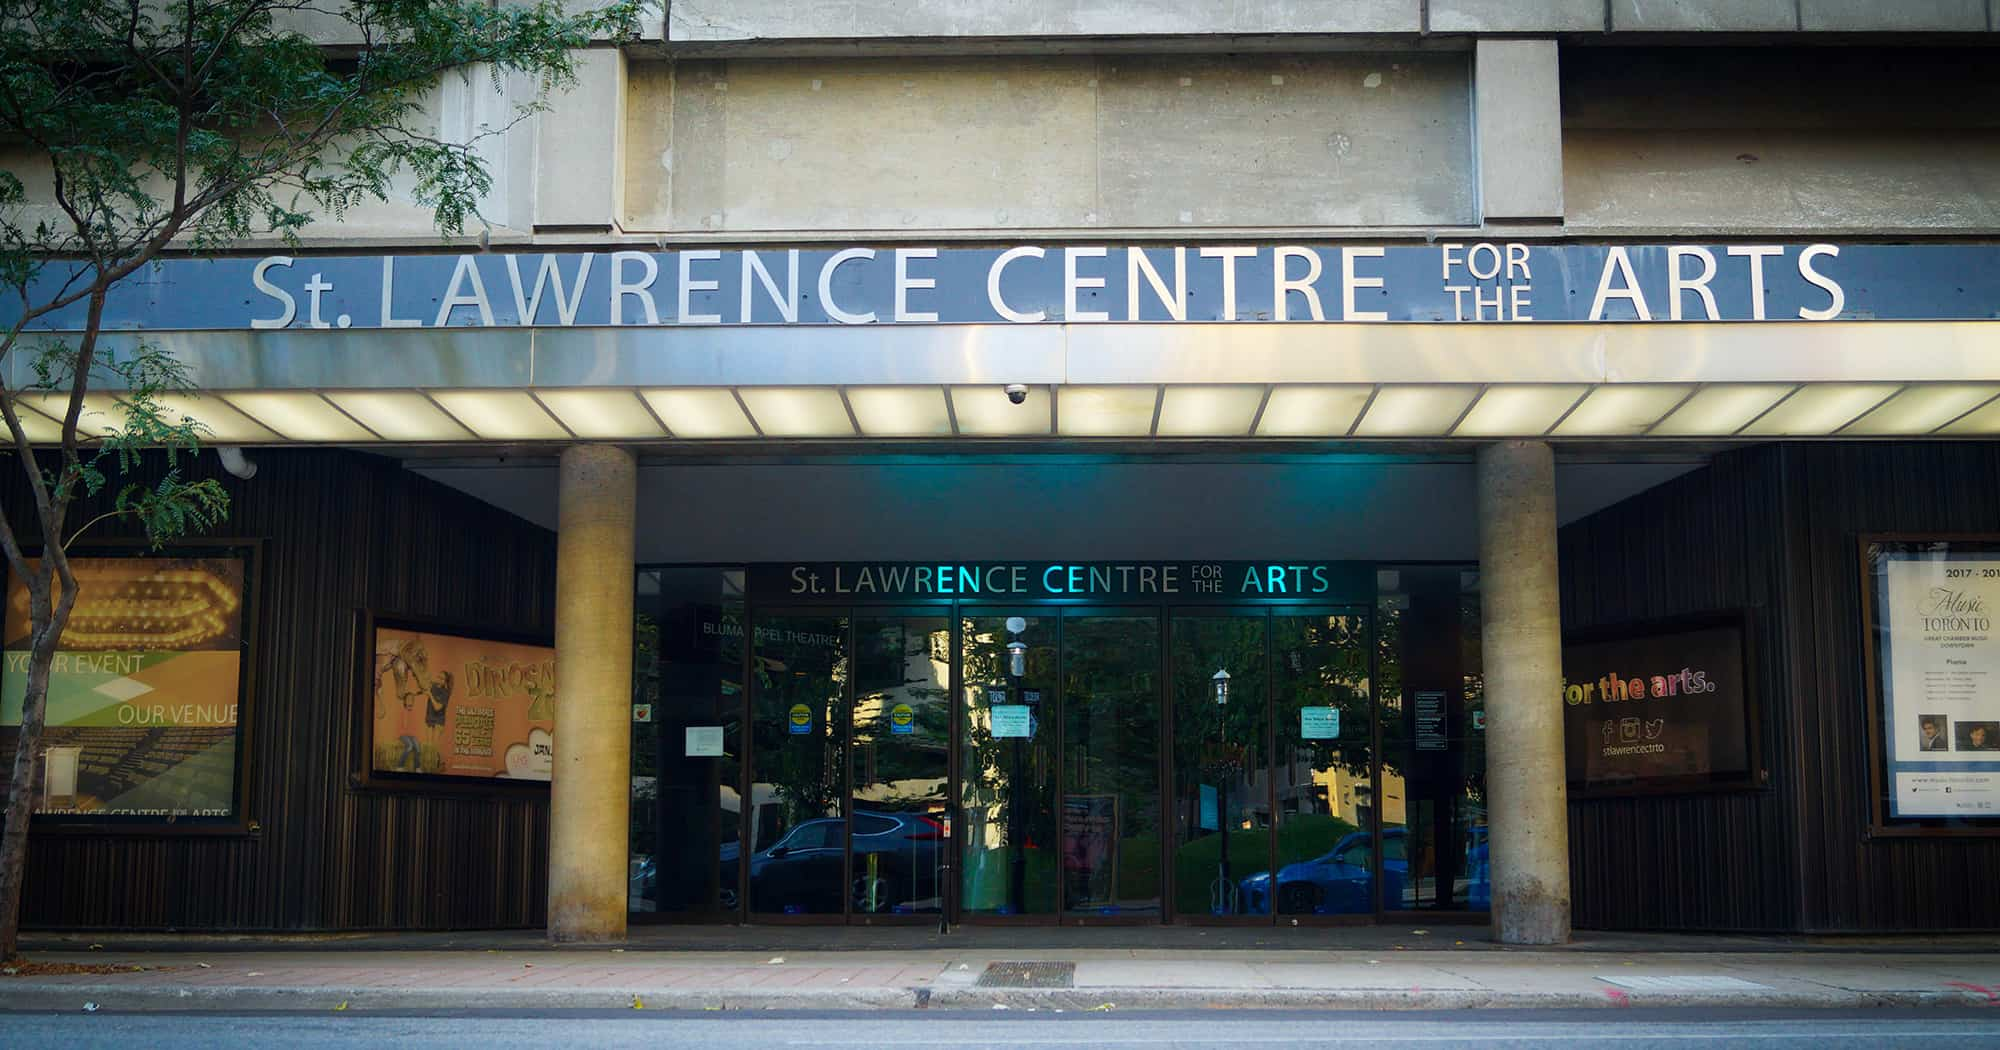 St. Lawrence Centre for the Arts